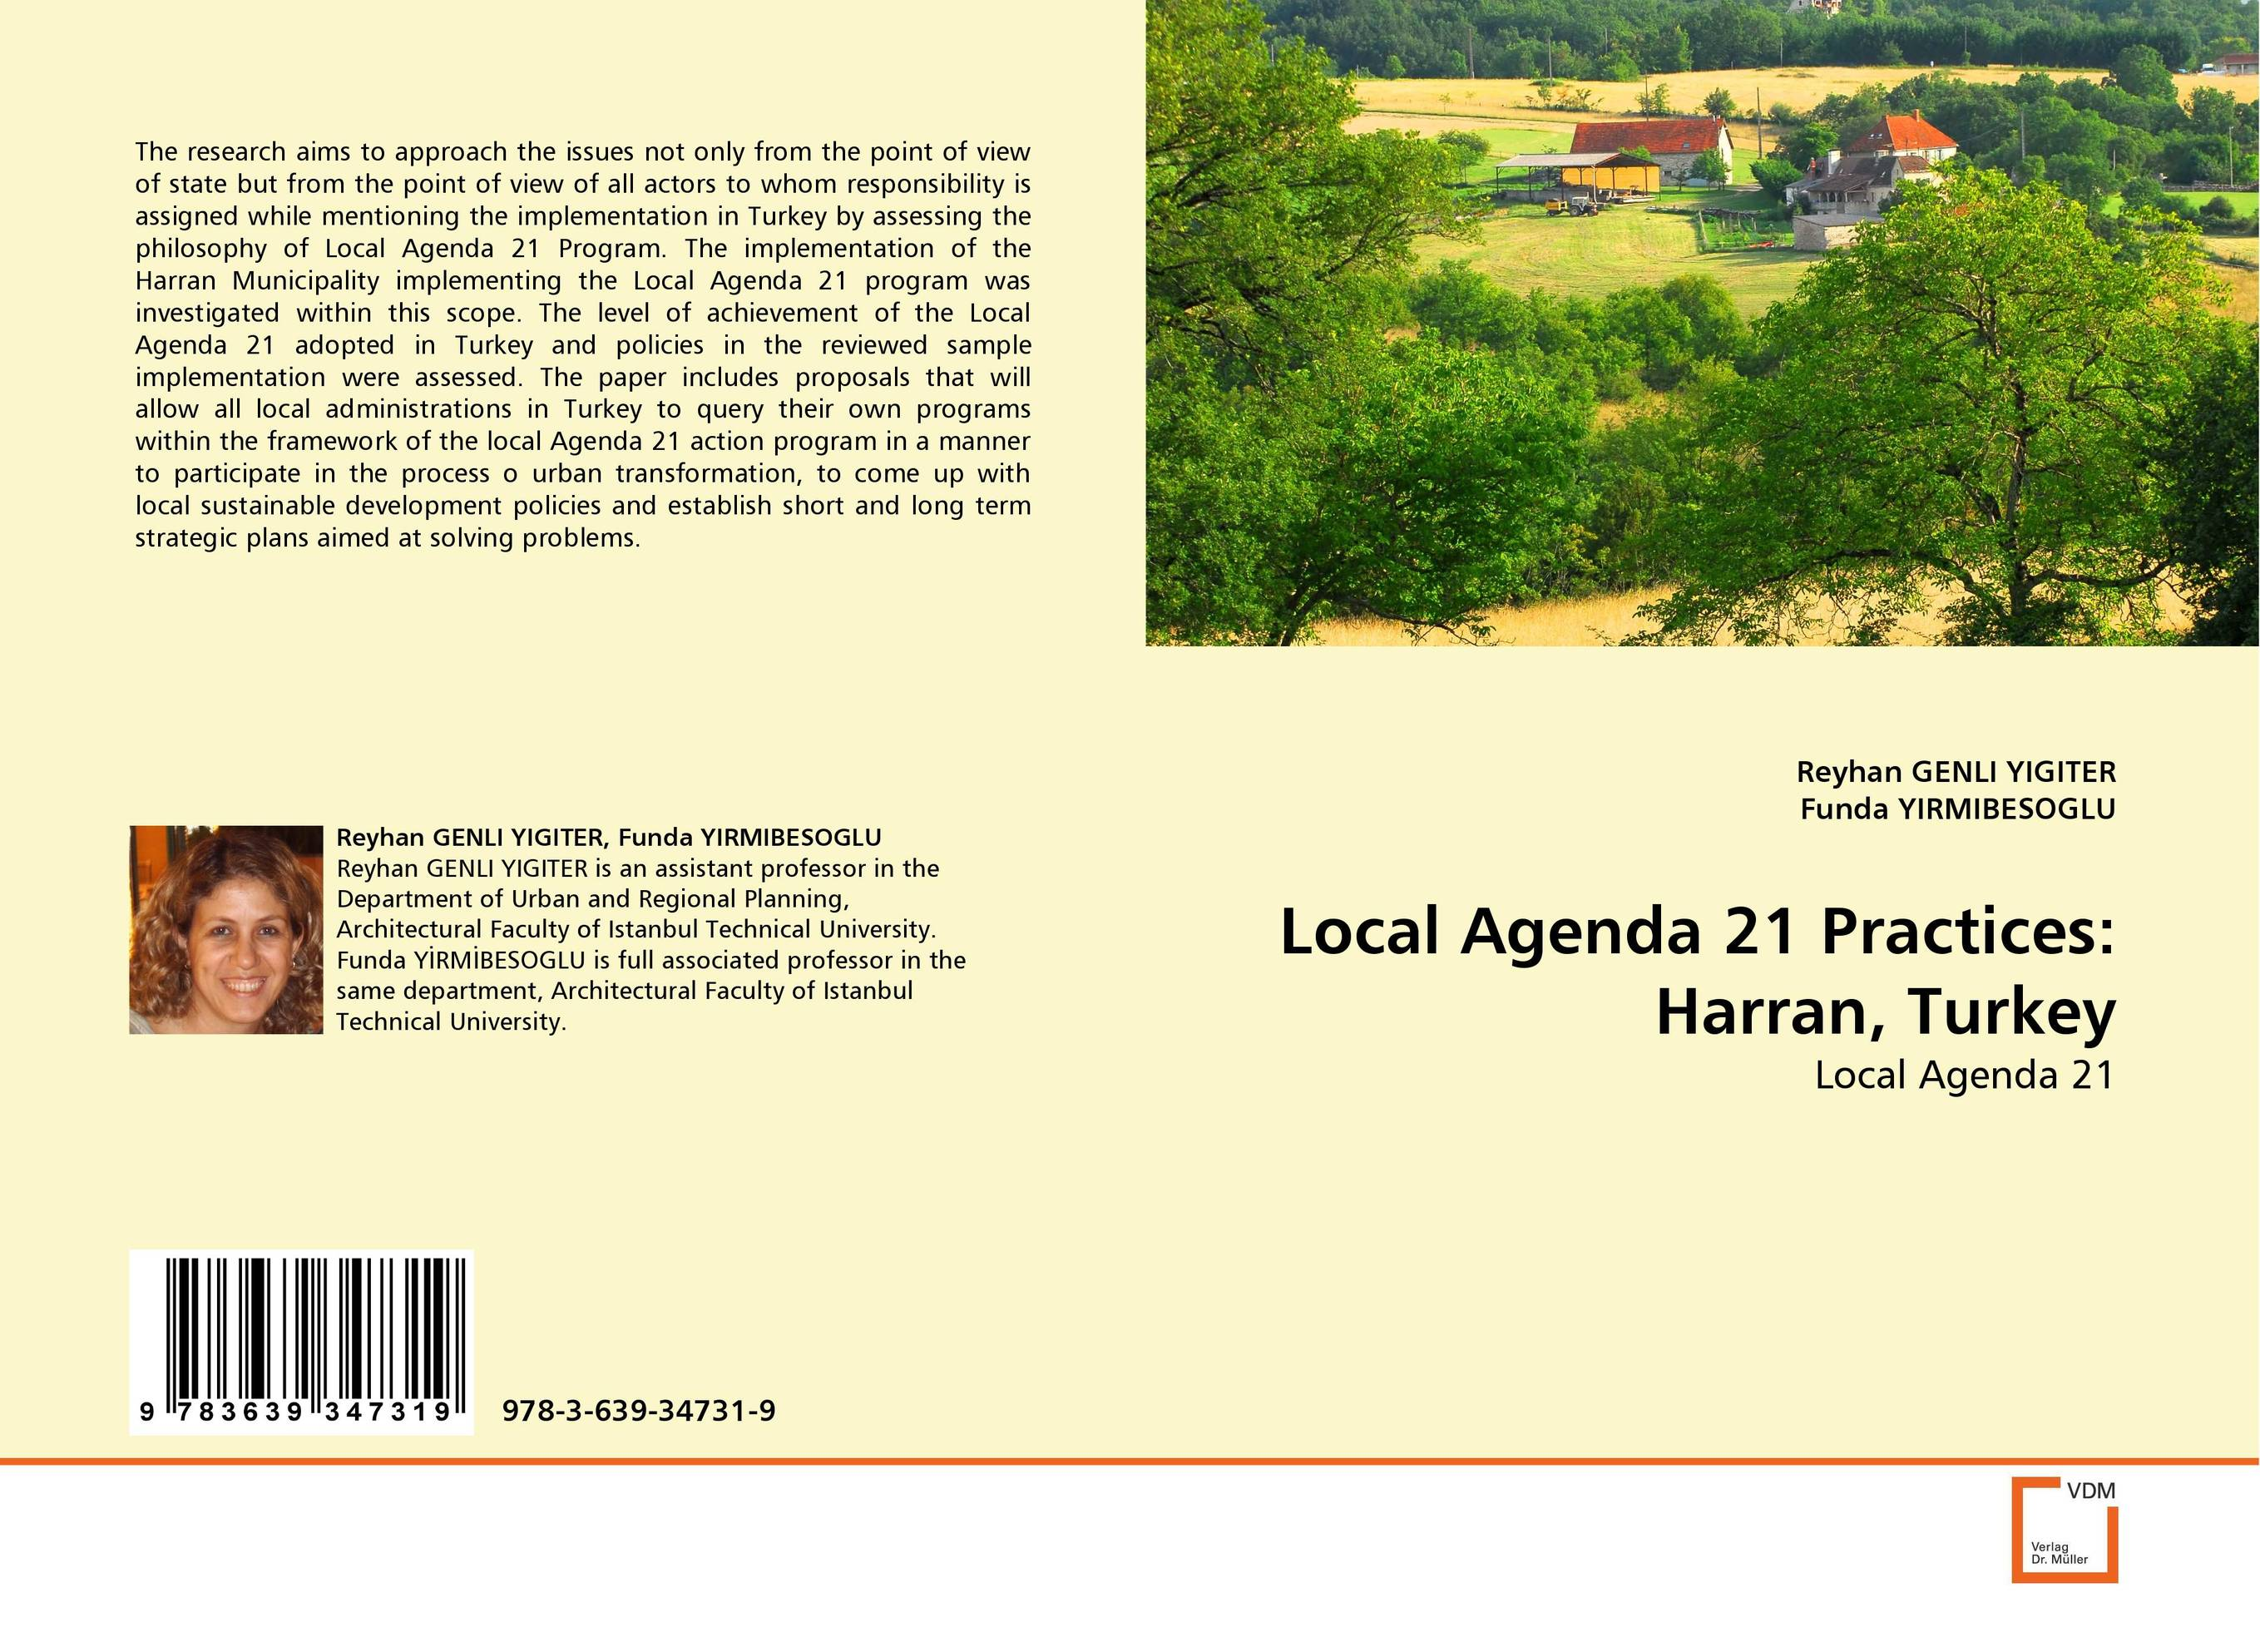 Local Agenda 21 Practices: Harran, Turkey implementation of strategic plans